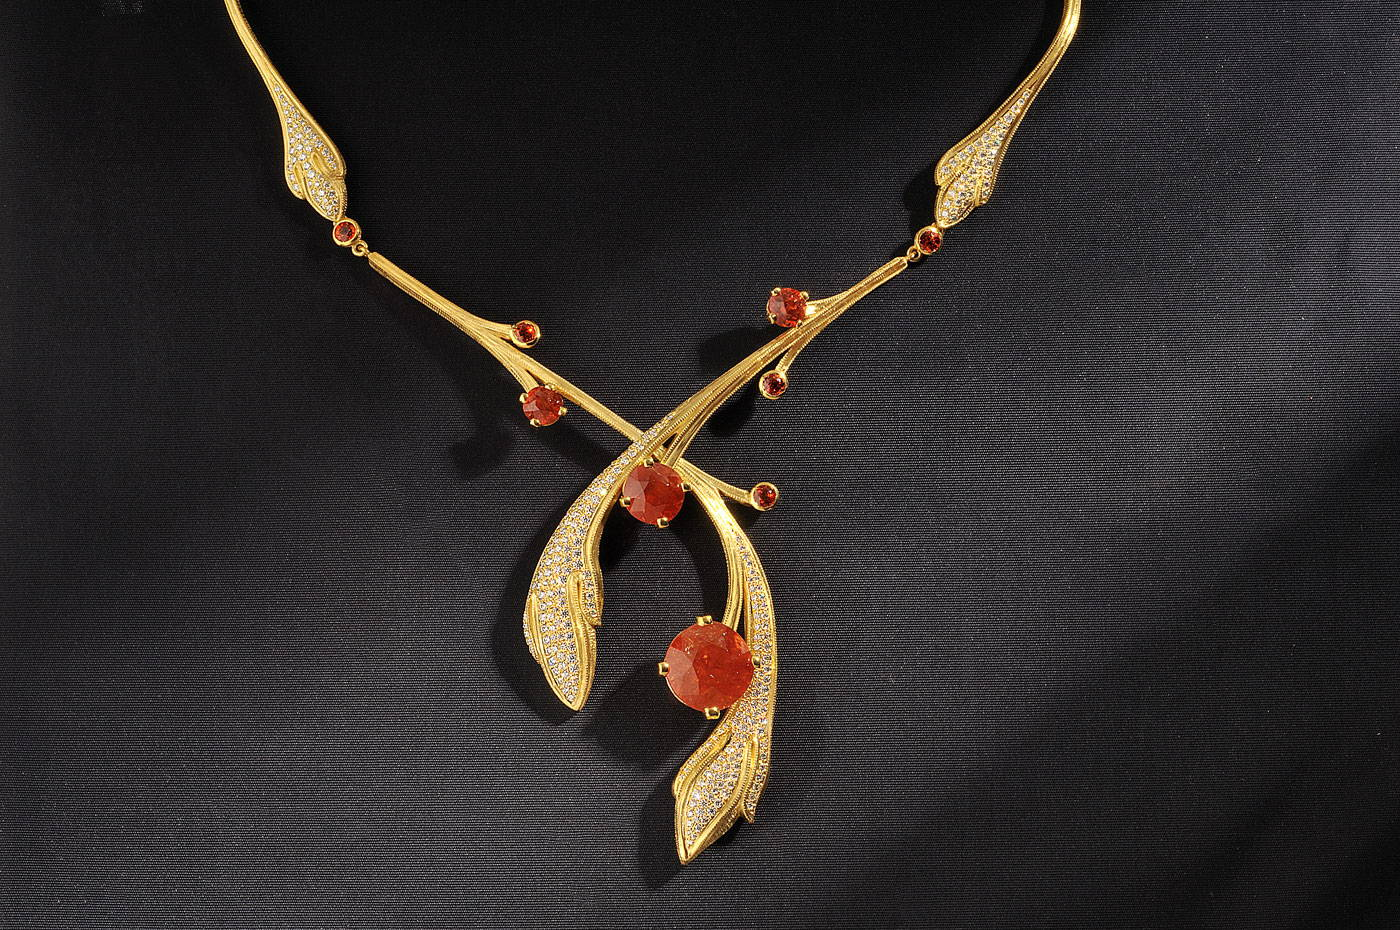 Image of Tangerine Pavel Myagkov Hall of Gems Jewelry at Field Museum